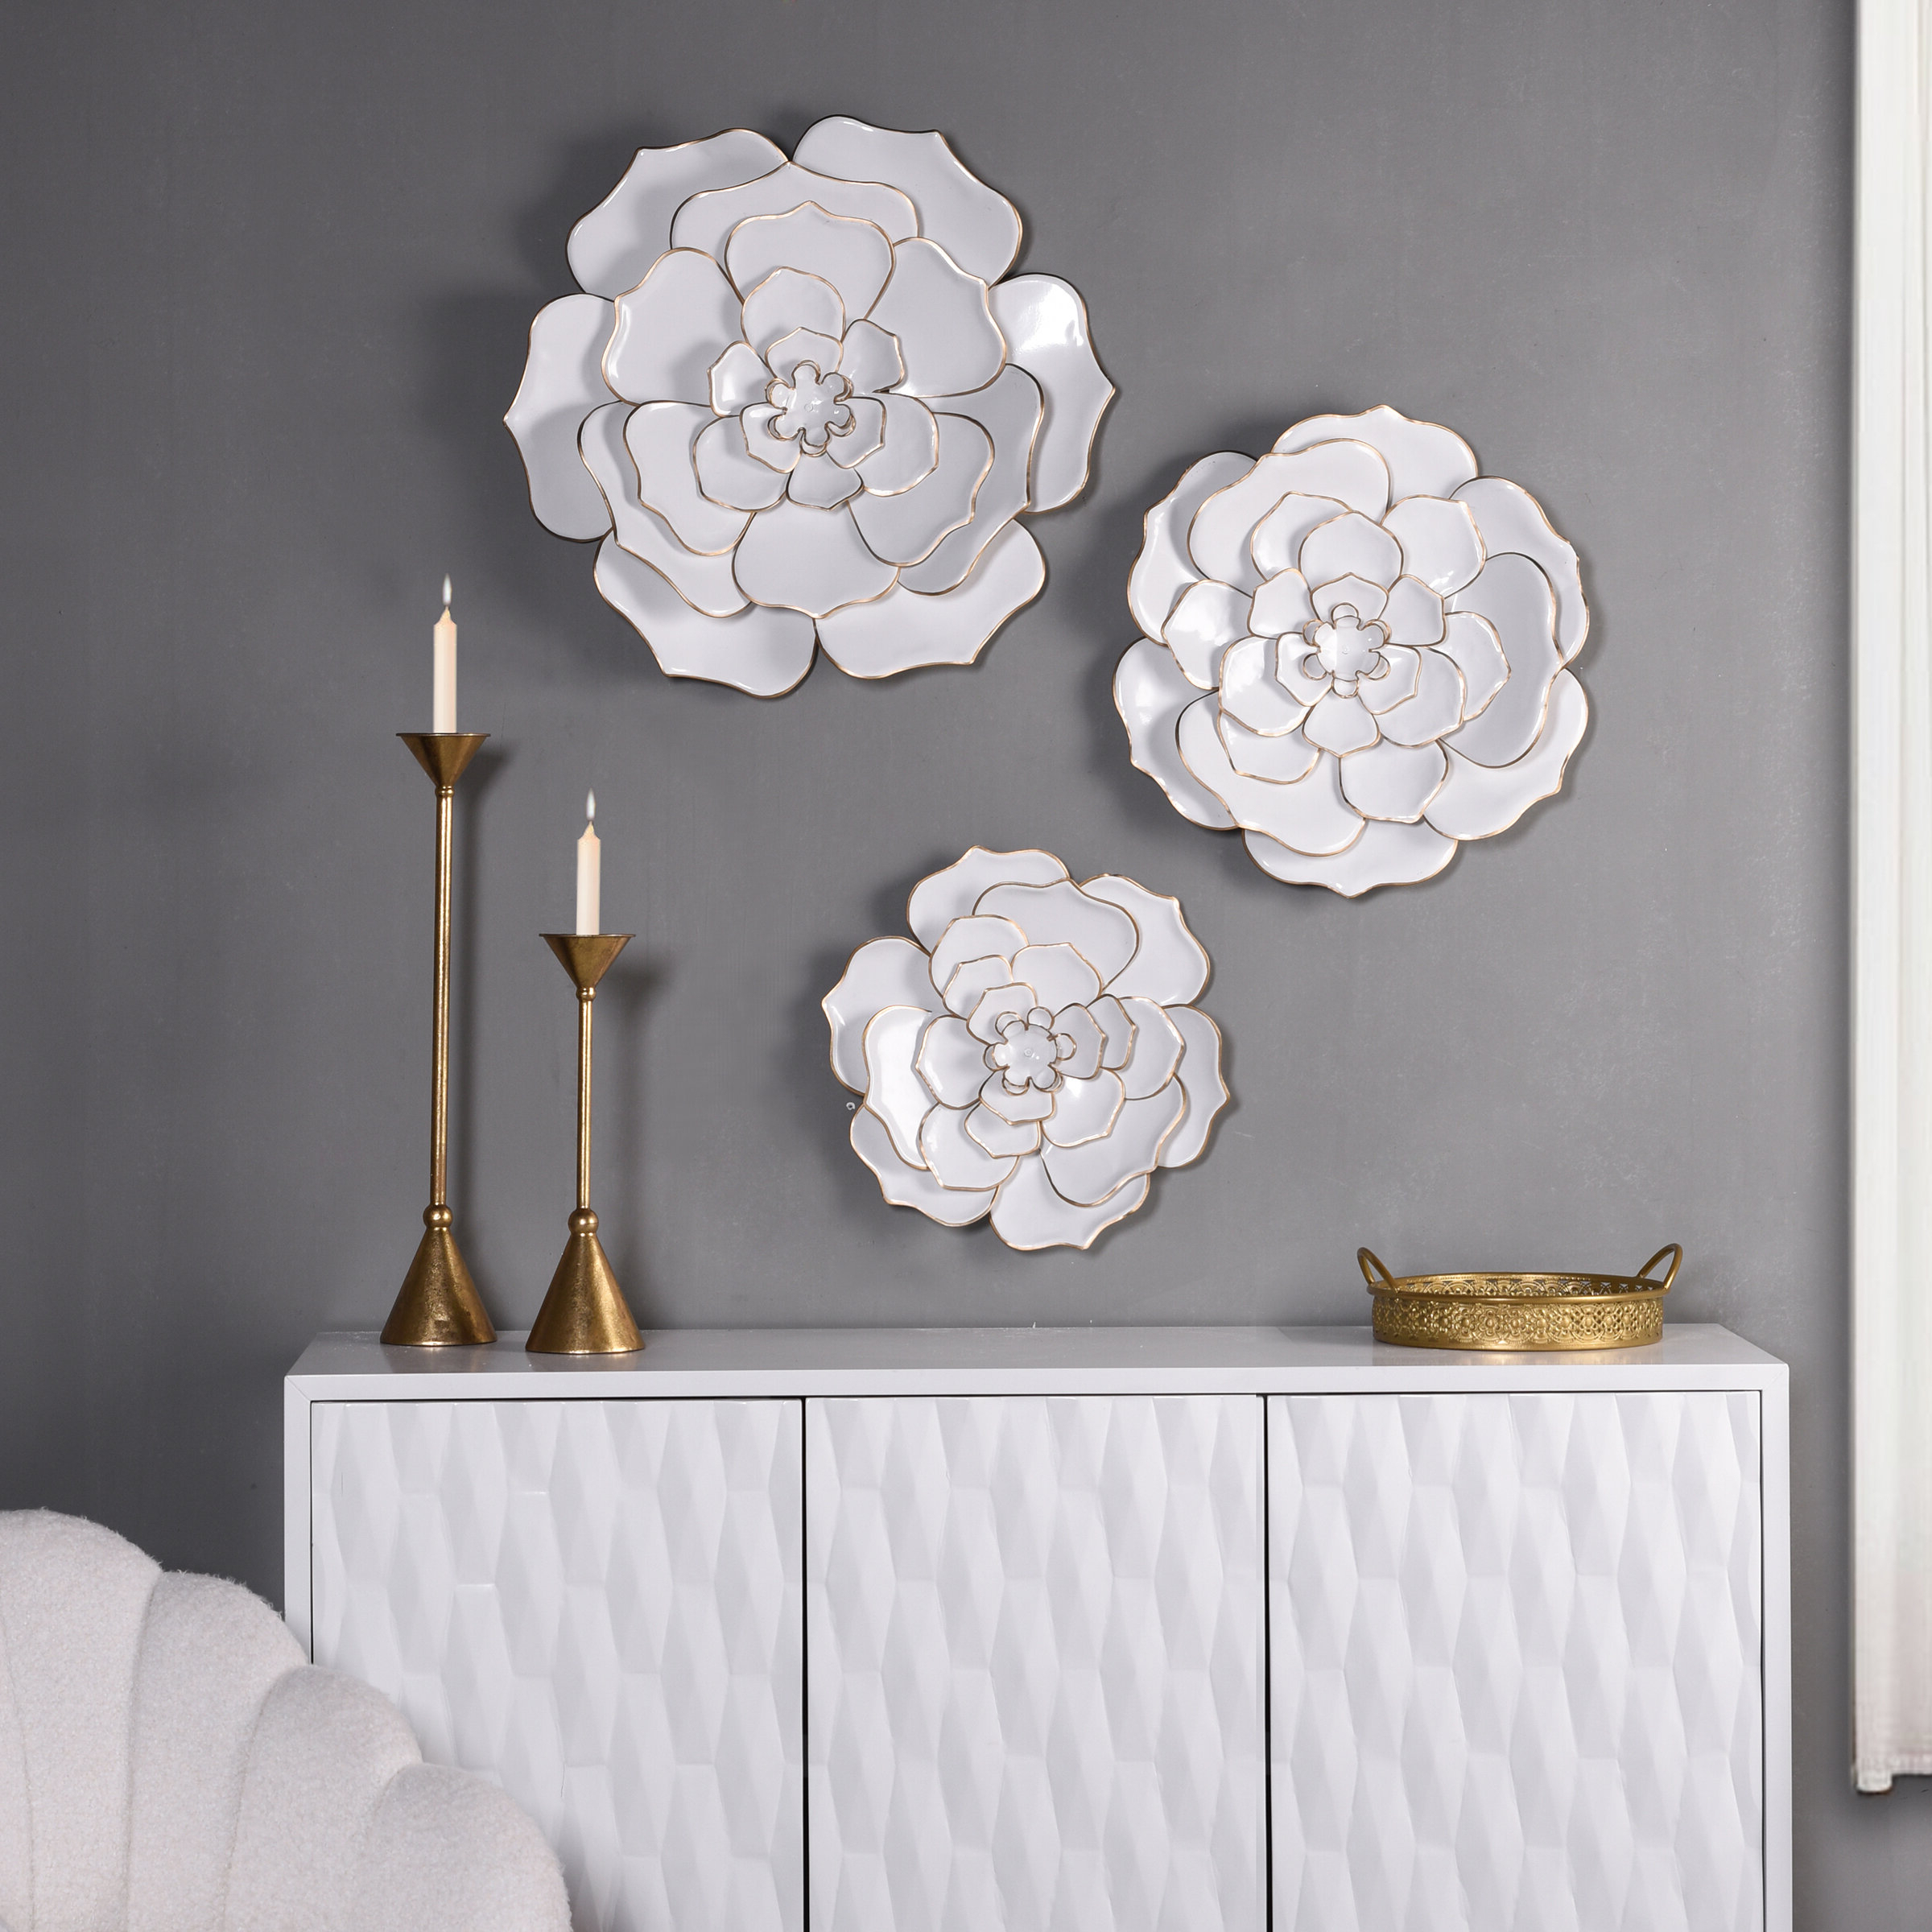 3 Piece Floral Metal Wall Décor Set In Preferred 3 Piece Metal Flower Wall Décor Set (View 6 of 20)